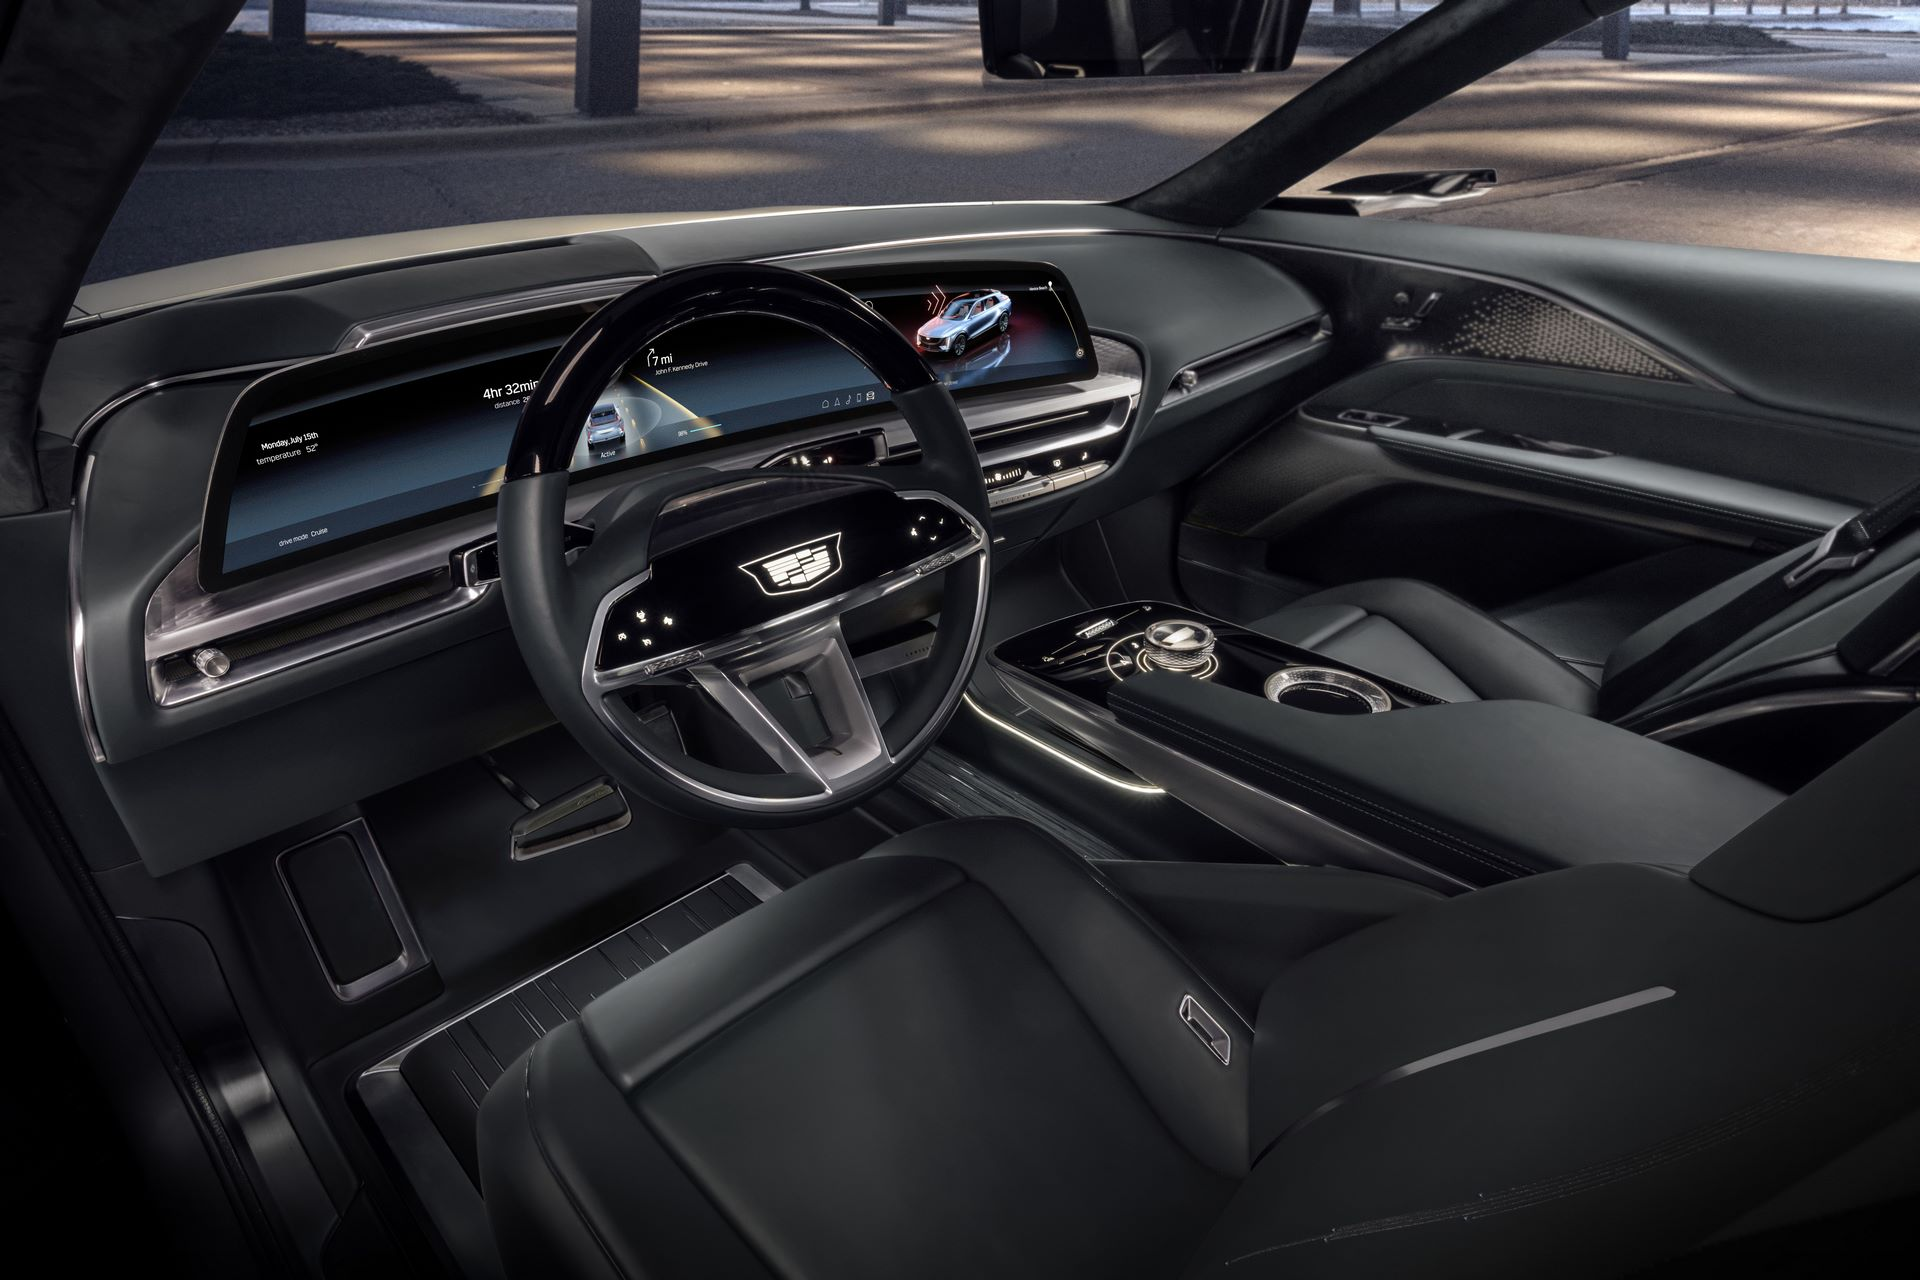 Cadillac LYRIQ's new electric vehicle architecture opens up possibilities in vehicle spaciousness and design.Images display show car, not for sale. Some features shown may not be available on actual production model.